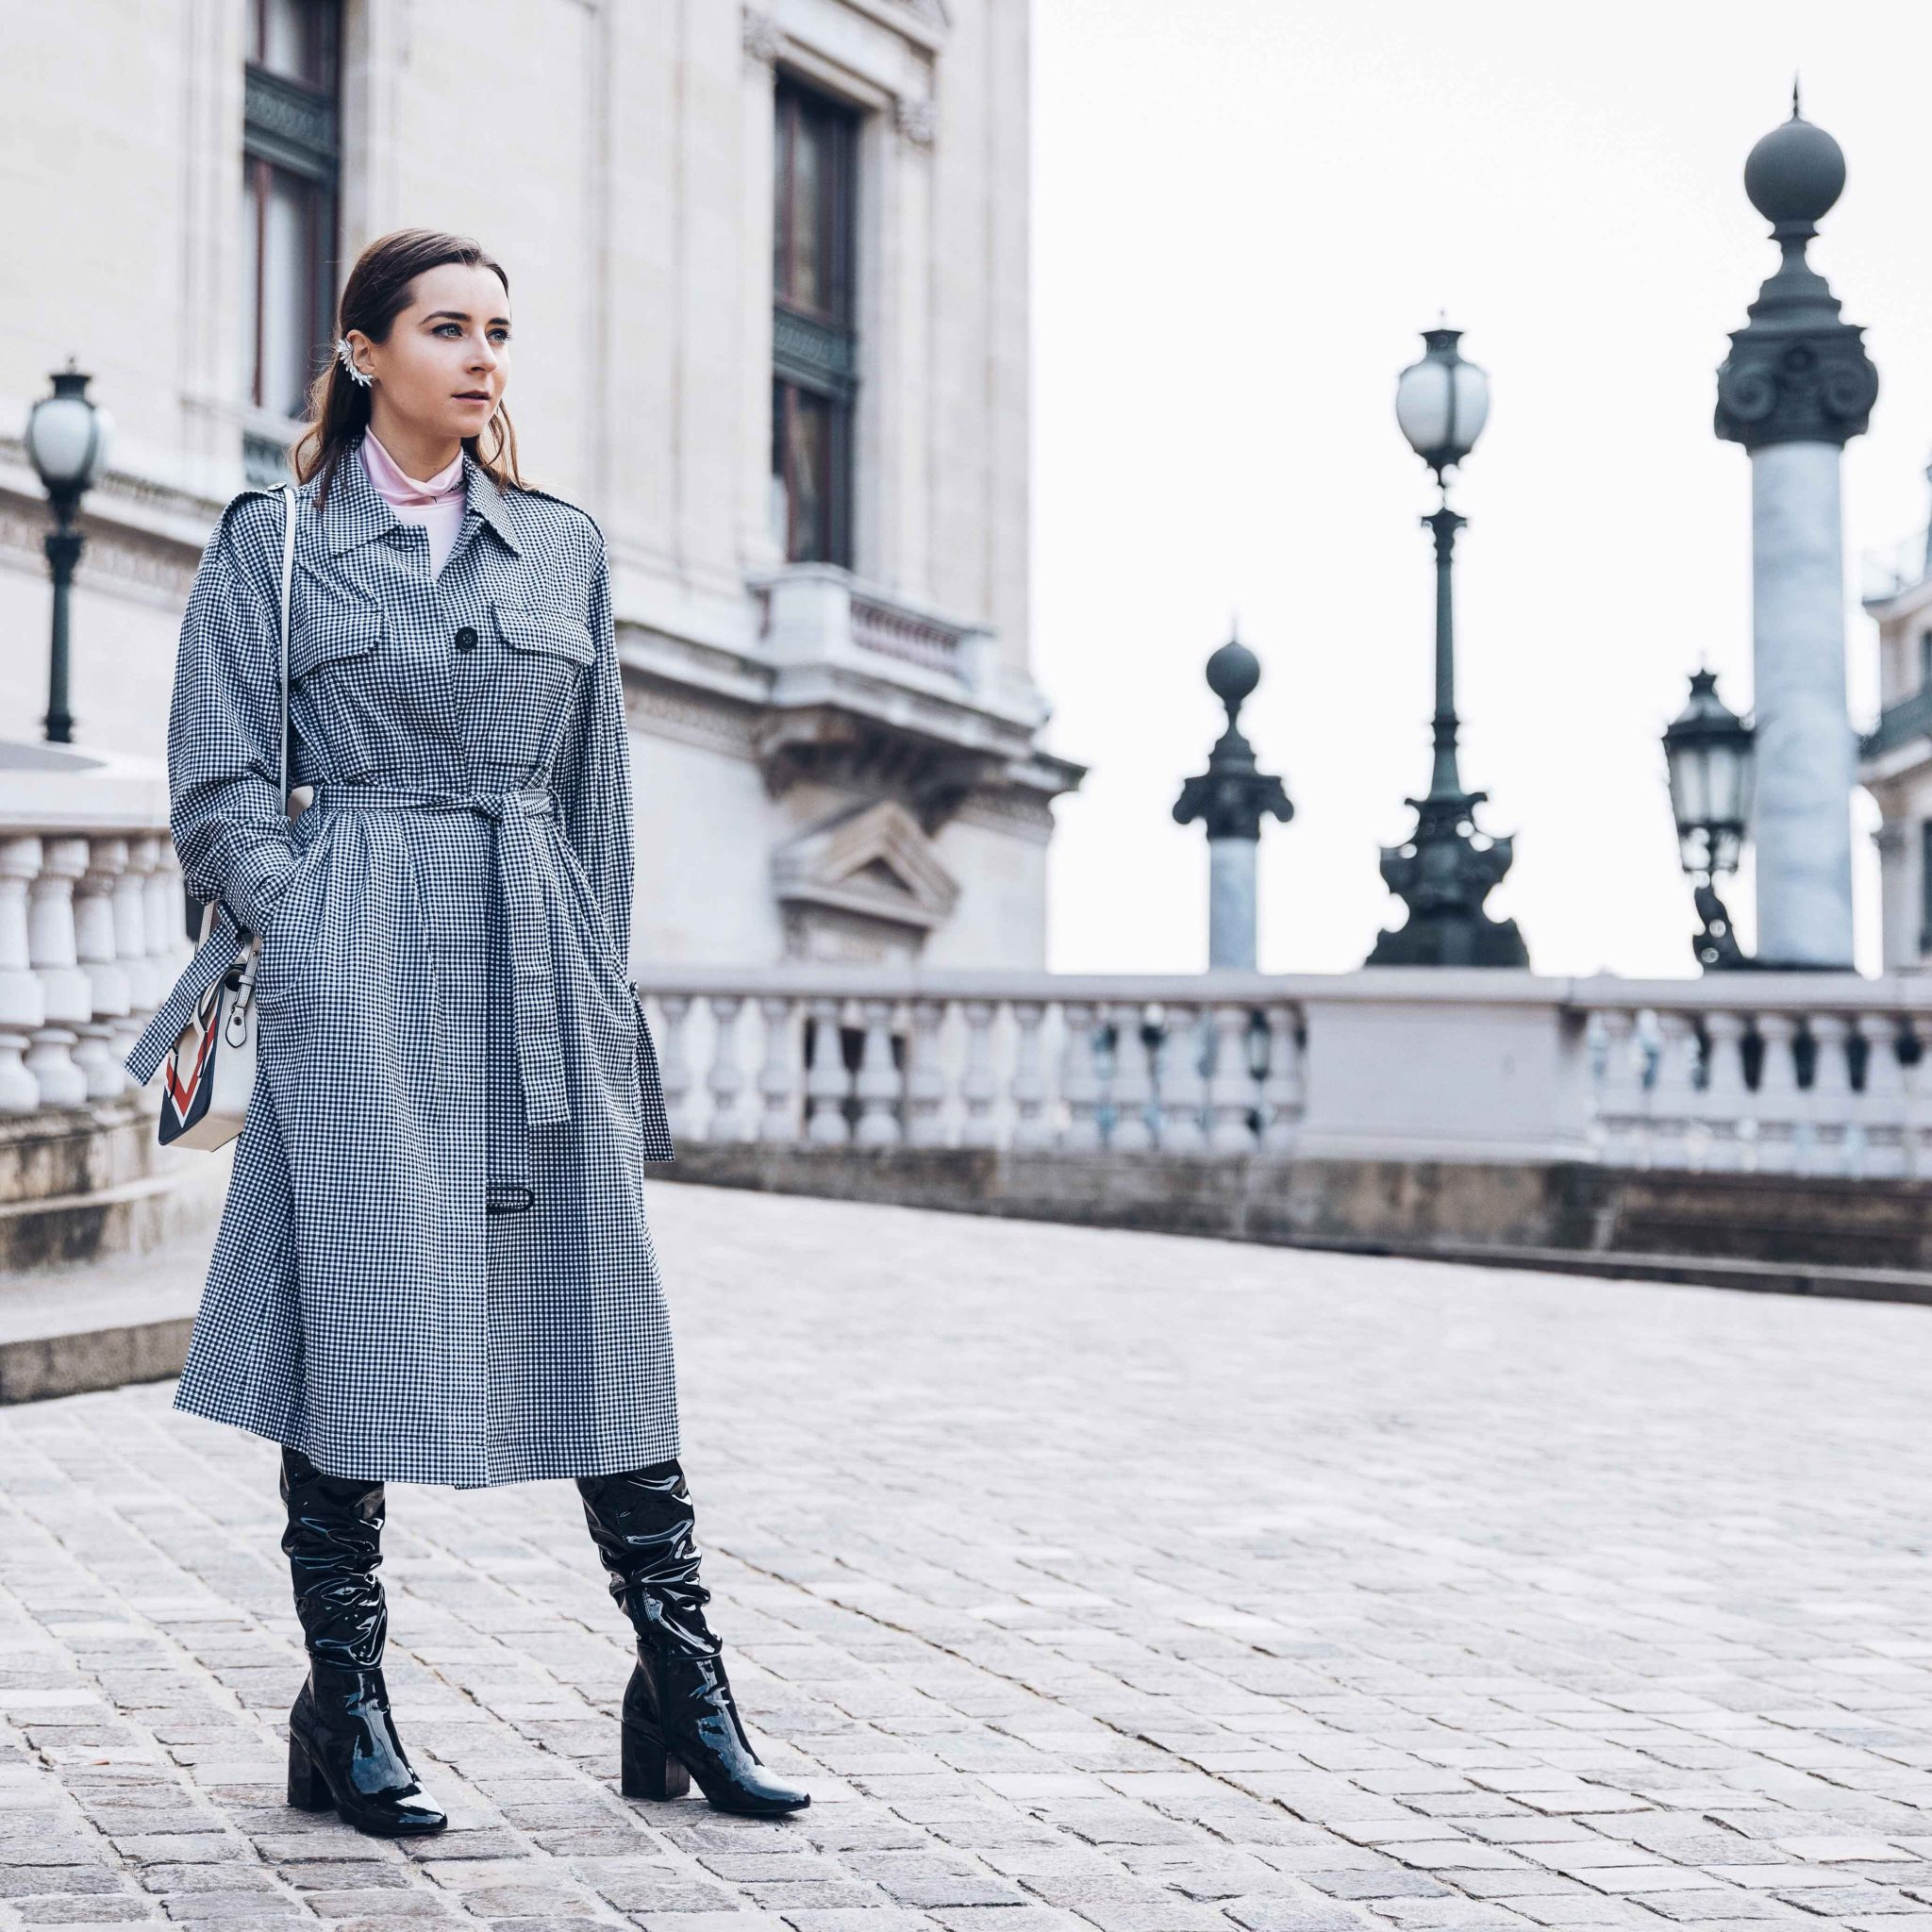 Spring Trench Coat - Gingham Trench Coat - Long Trench coat - Trench coat for women 2018 - Paris - Fashion Blogger